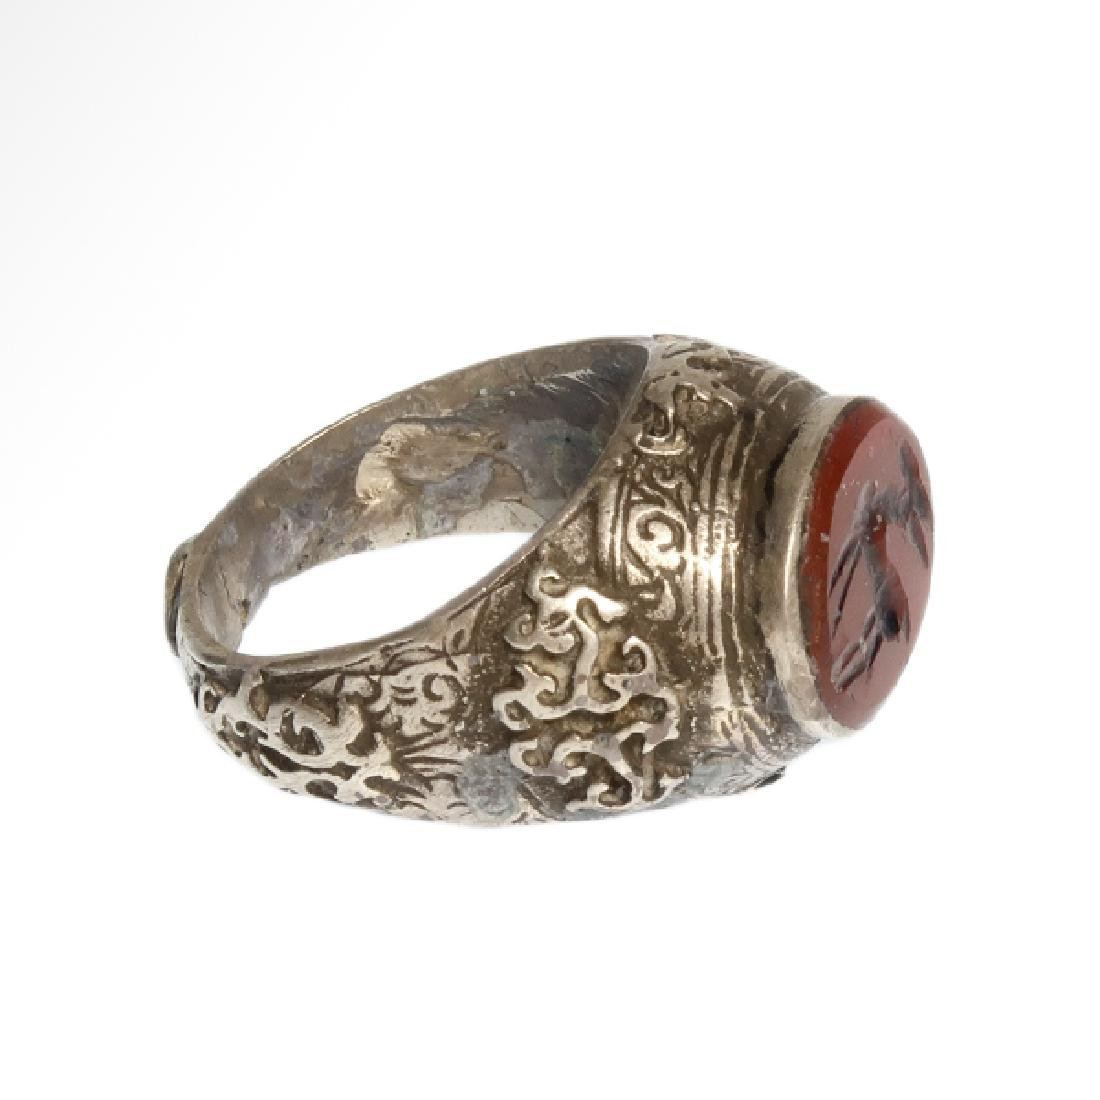 Medieval Near Eastern Silver Ring with Stag Cornelian - 4